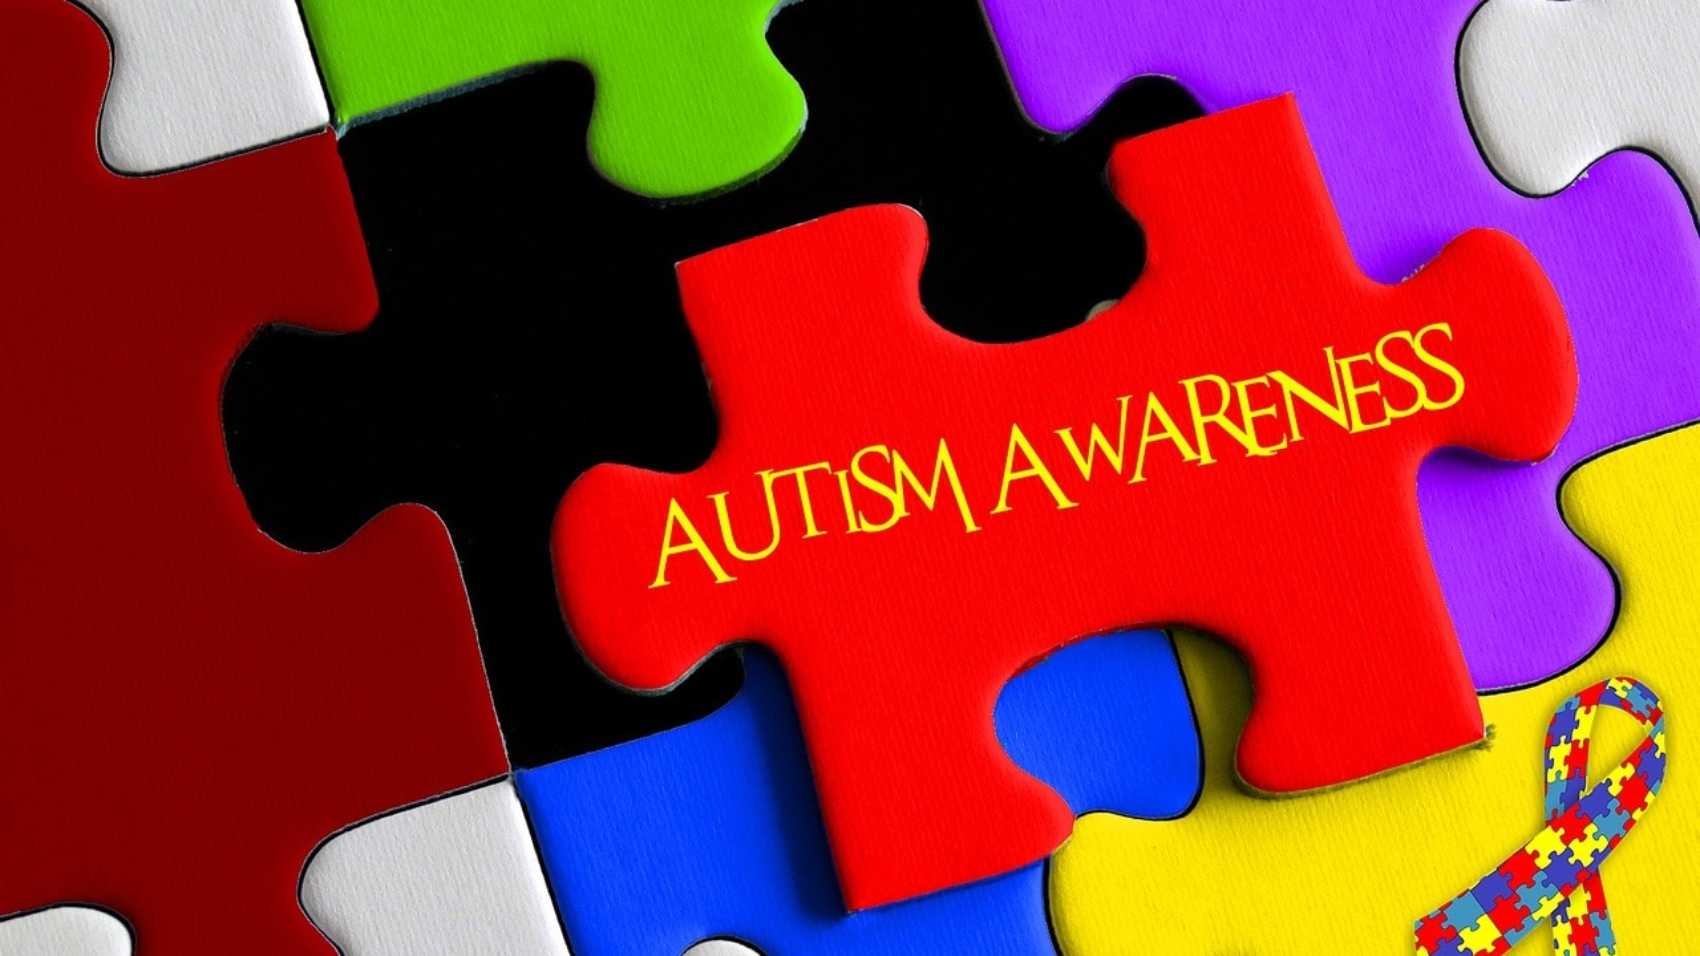 Early Signs of Autism EVERY Parent Should Be Aware Of